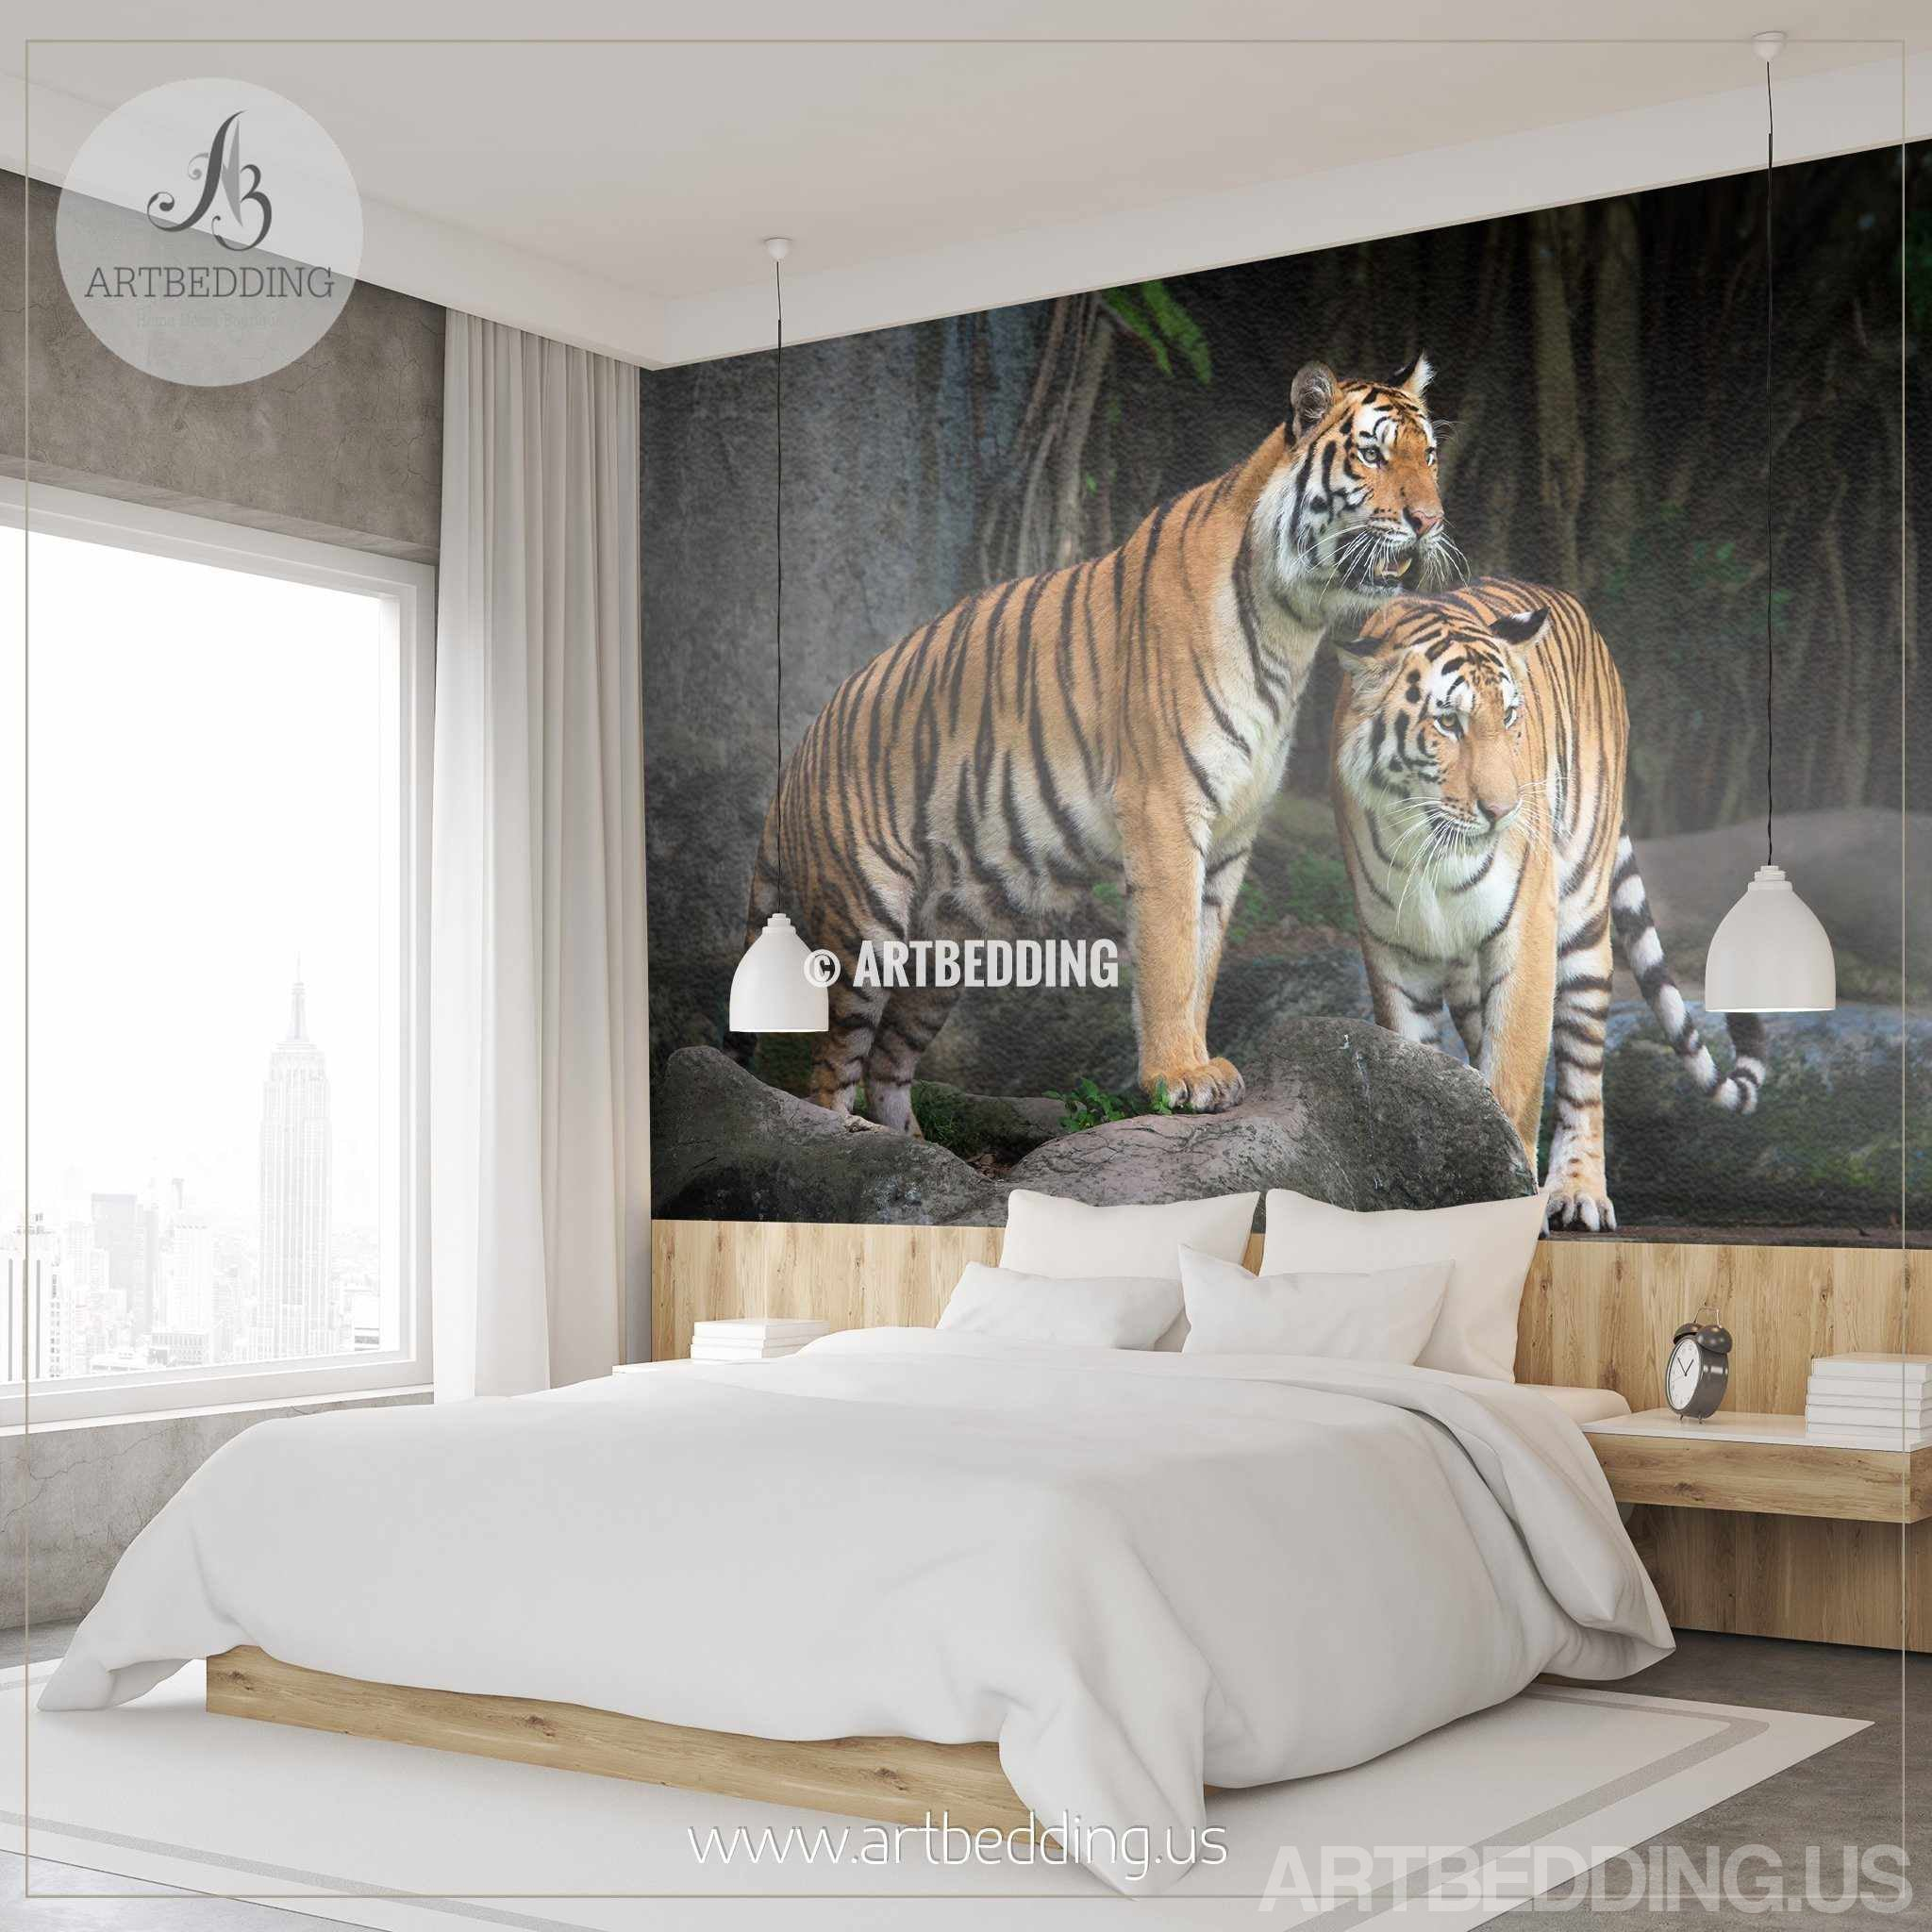 ... Tigers Wall Mural, Wild Tiger Self Adhesive Peel U0026 Stick Photo Mural,  African Tigers ... Part 24